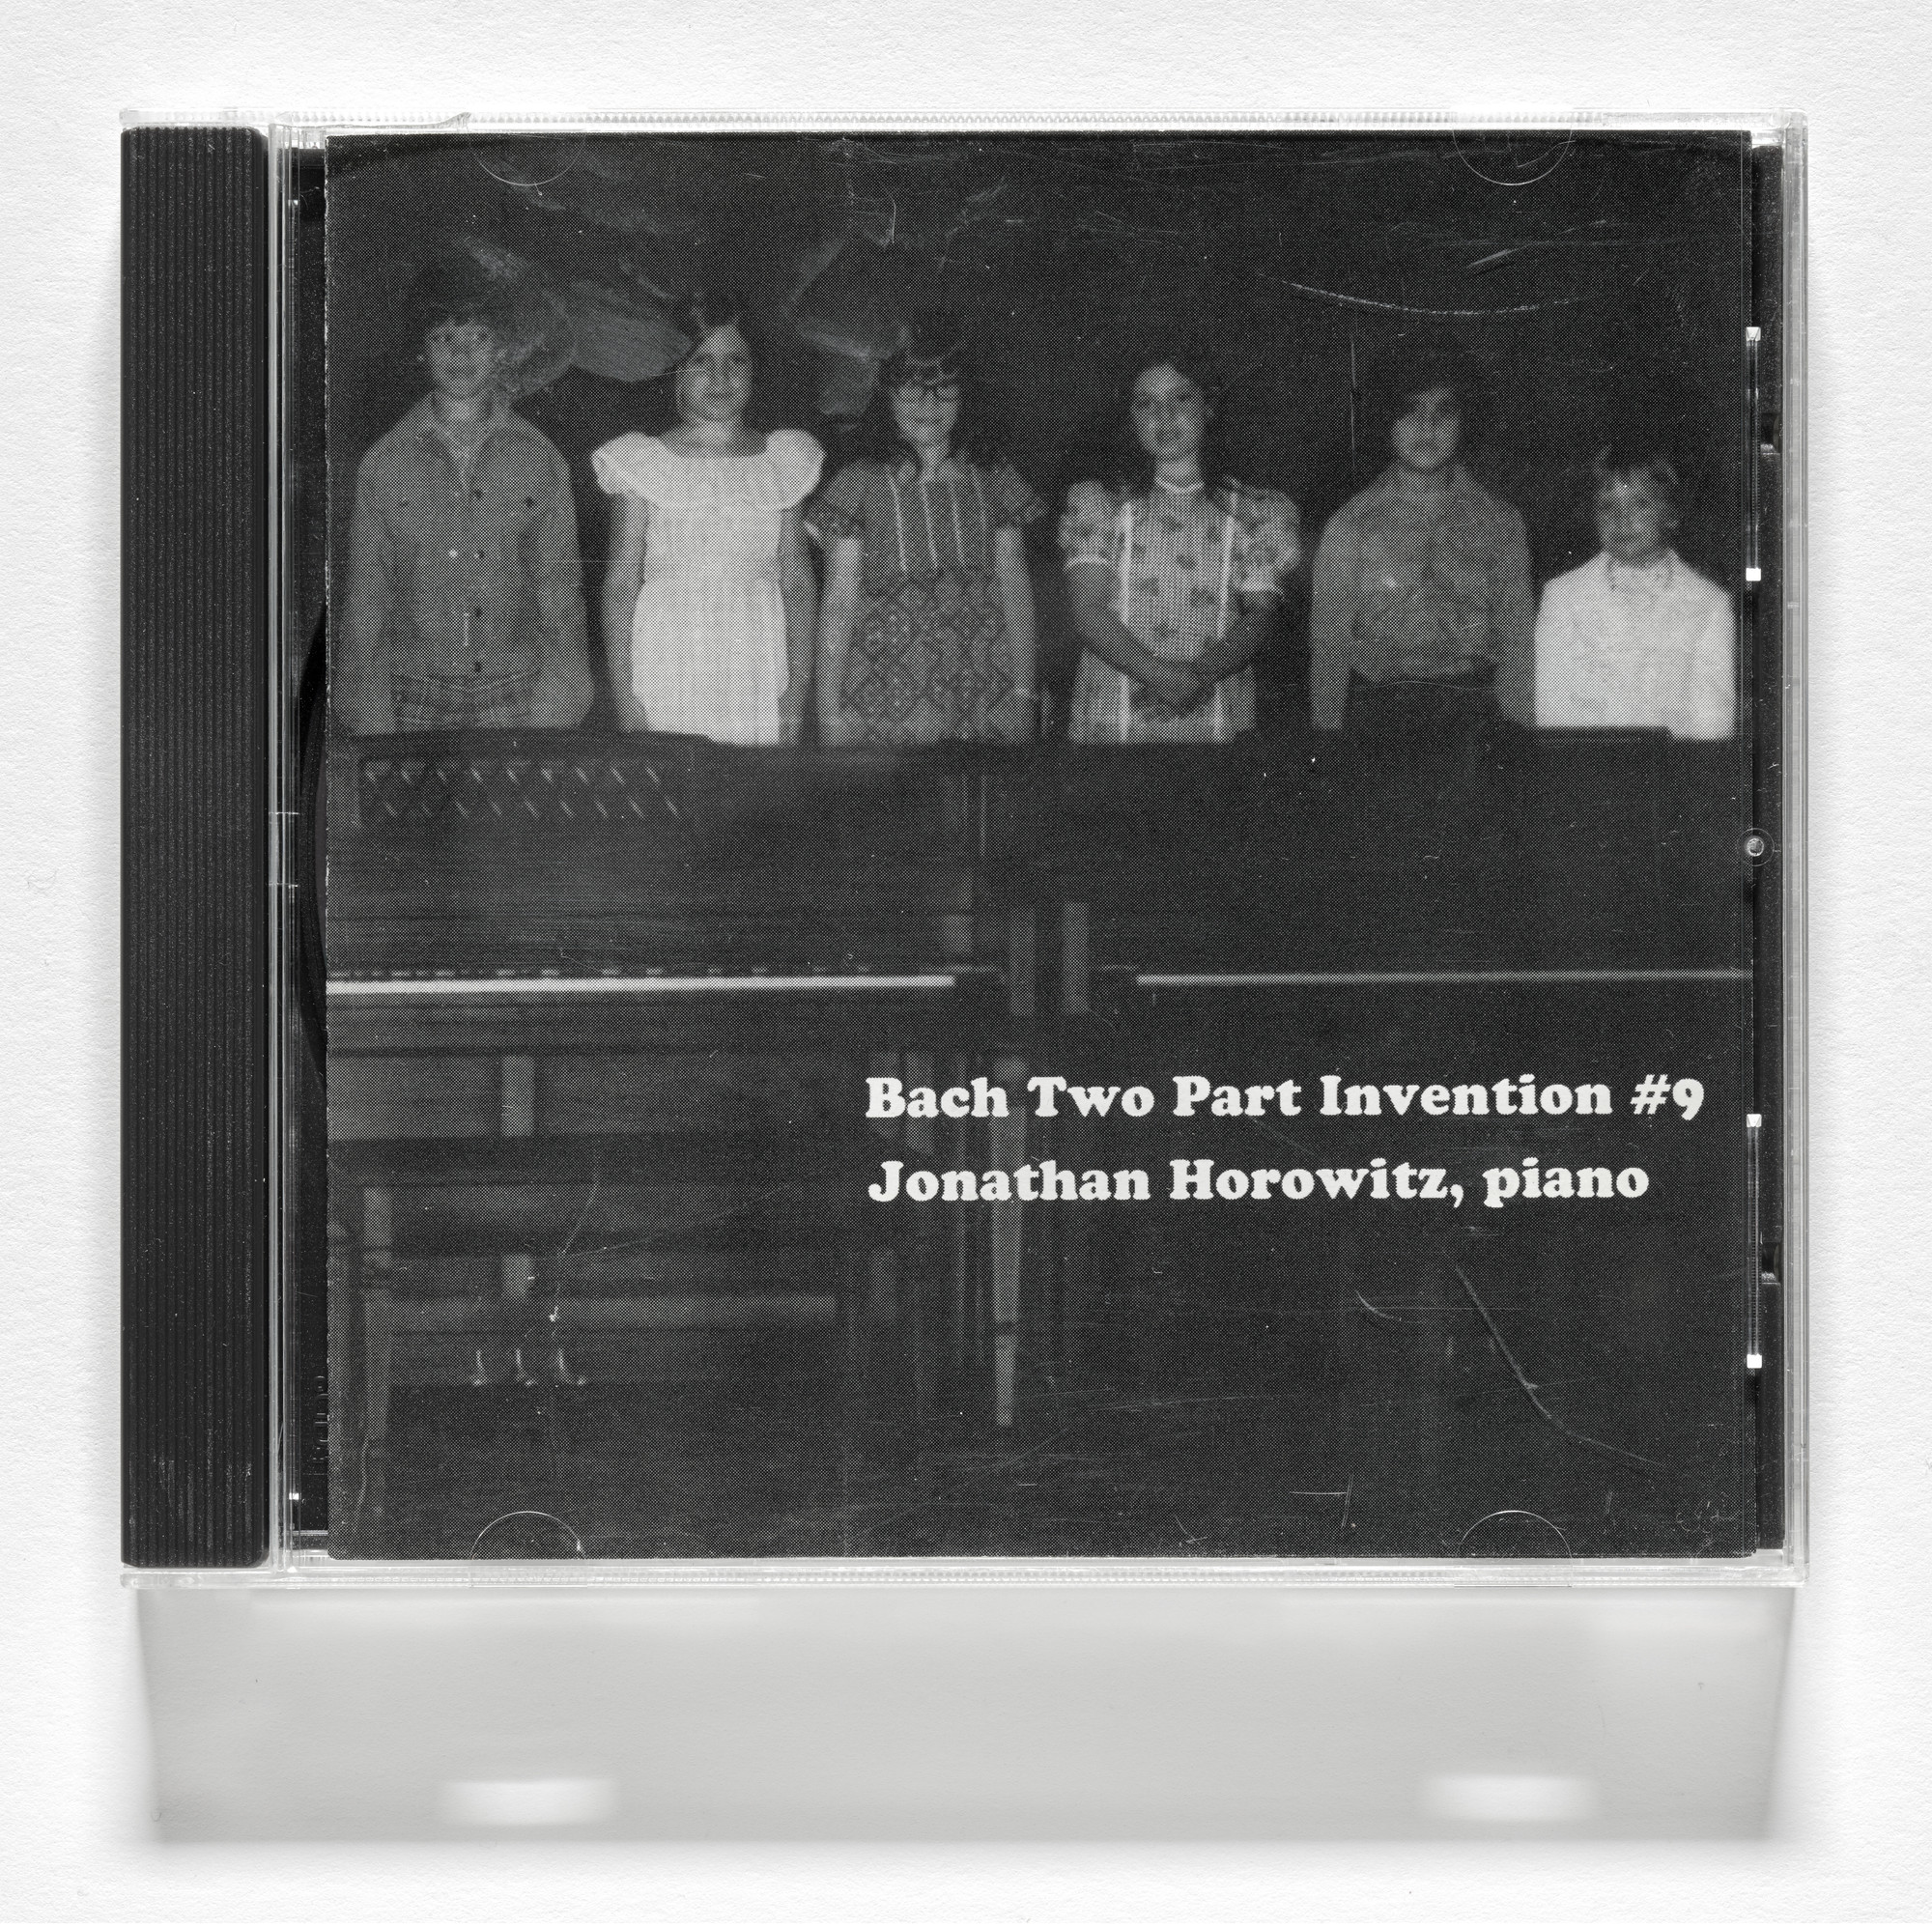 Jonathan Horowitz. Bach Two Part Invention #9. 1998